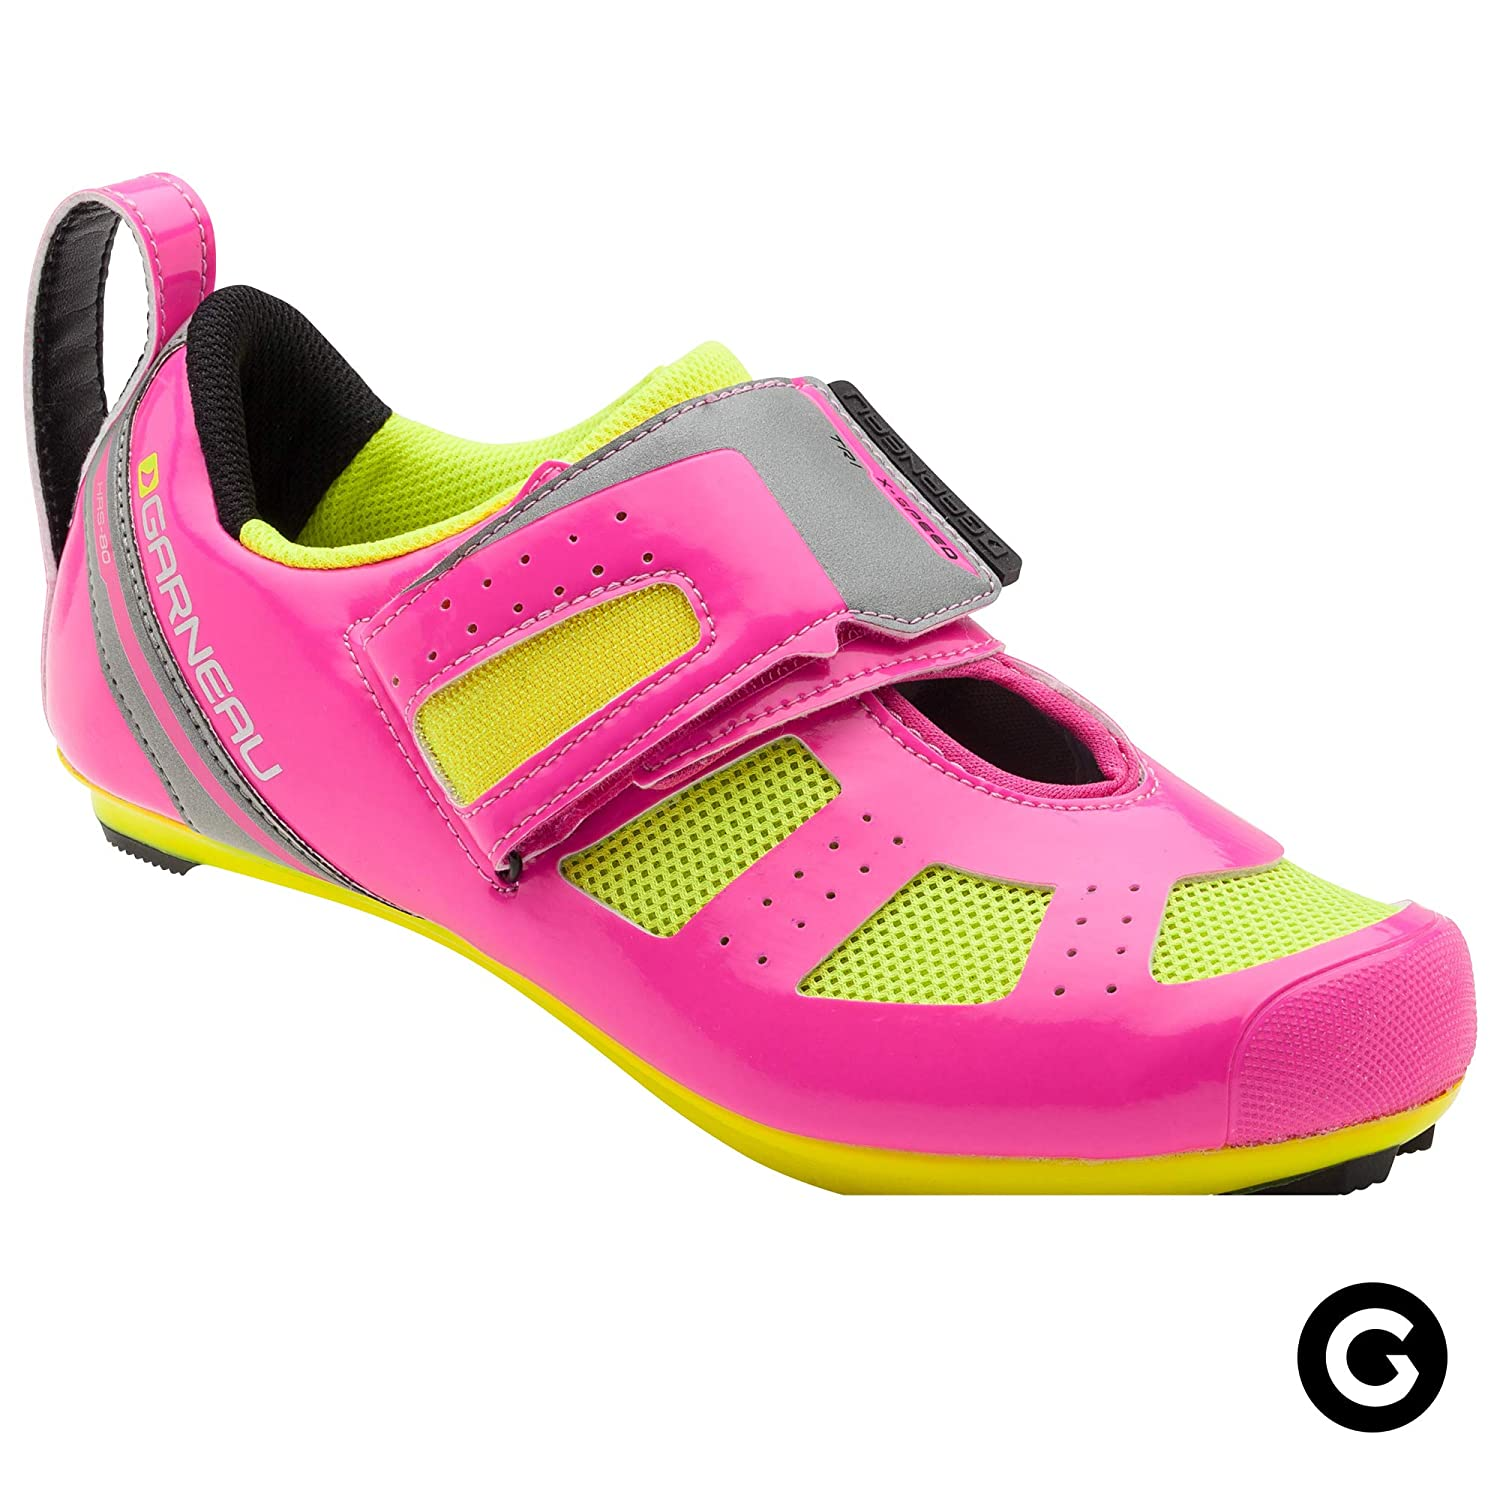 Louis Garneau Women s Tri X-Speed III Triathlon Cycling Shoes for Racing and Indoor Biking, Compatible with Major Road and SPD Pedals